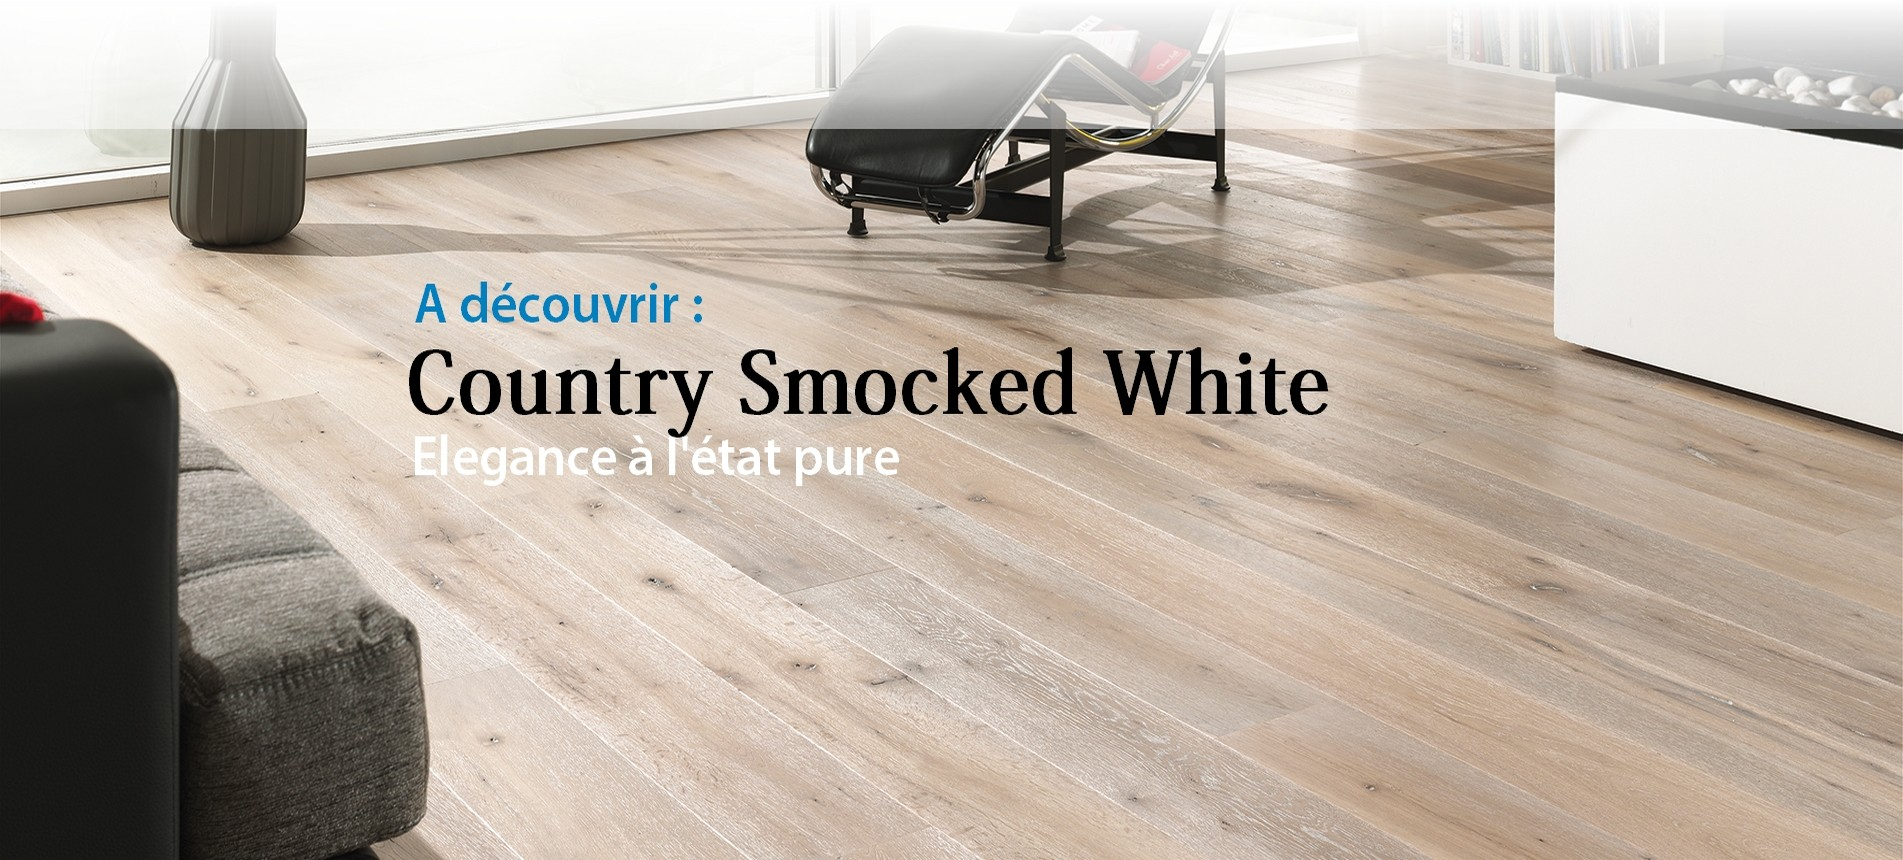 Country Smocked White